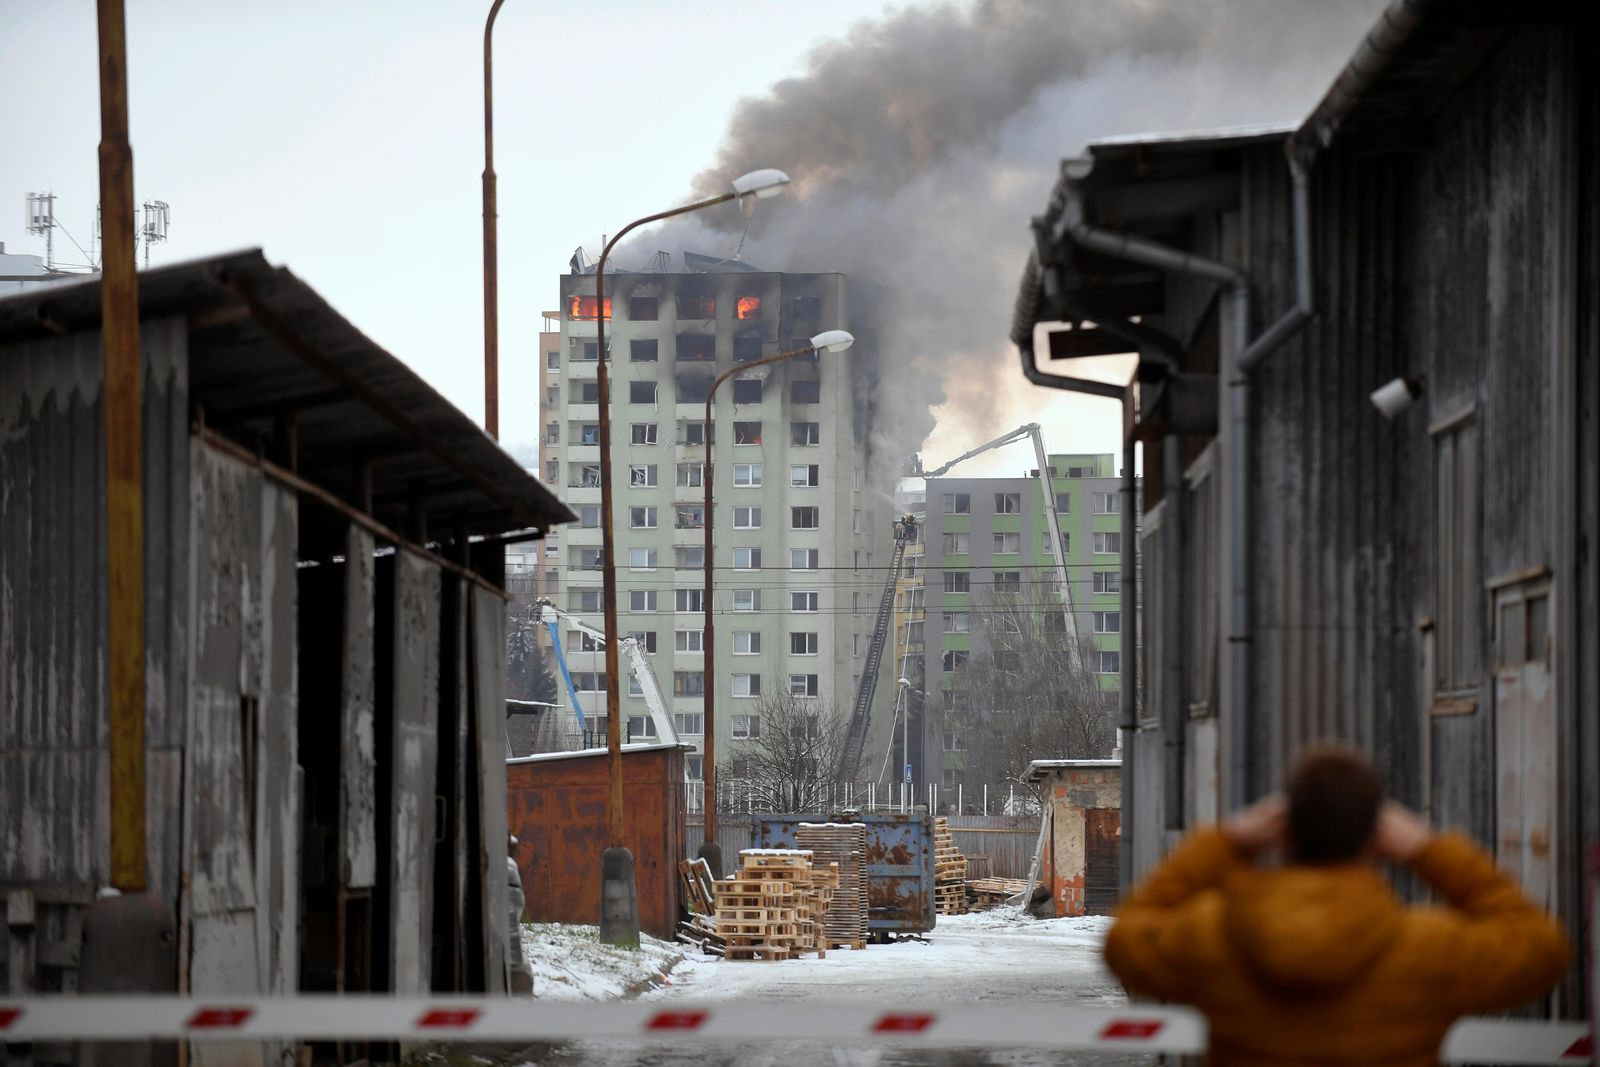 Smoke rise from a damaged 12-storey apartment block after a gas explosion in Presov, Slovakia, Friday, Dec. 6, 2019. Officials say a gas explosion in an apartment block in Slovakia has killed at least five people and others are trapped on the roof of the building. Firefighters say the explosion occurred in a 12-story building in the city of Presov shortly after noon on Friday.  (Frantisek Ivan/TASR via AP)